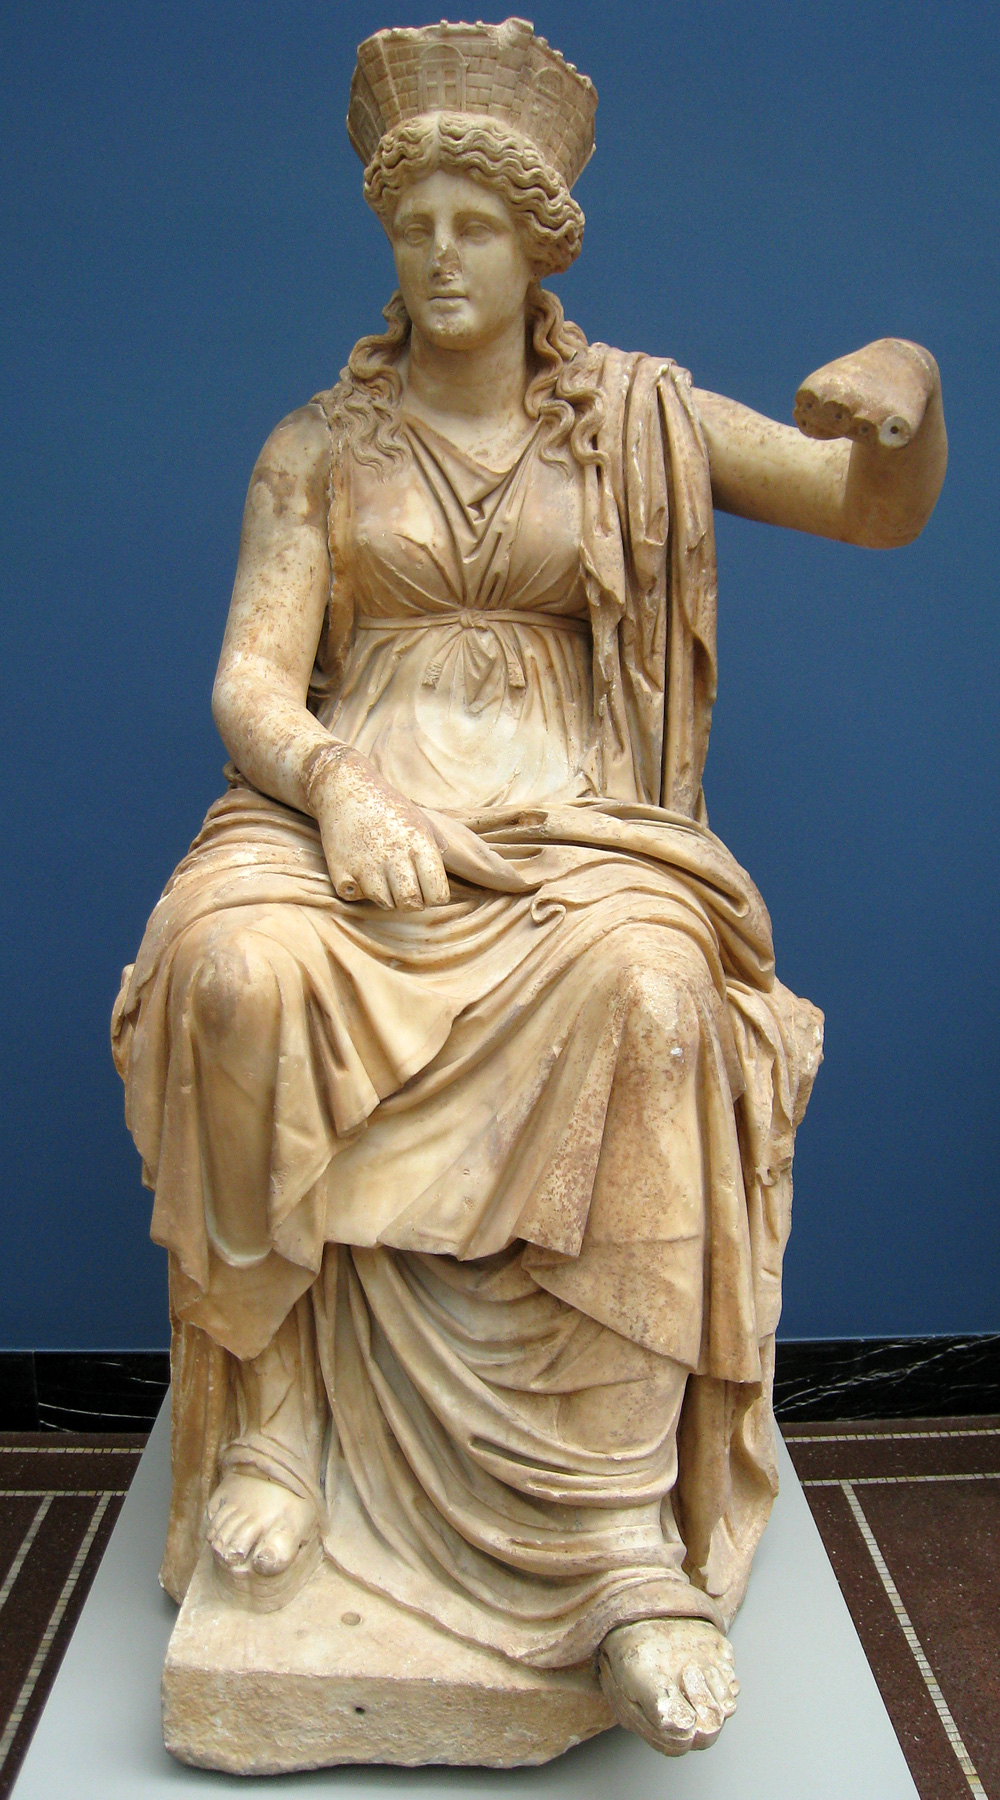 Cybele, Mother Earth